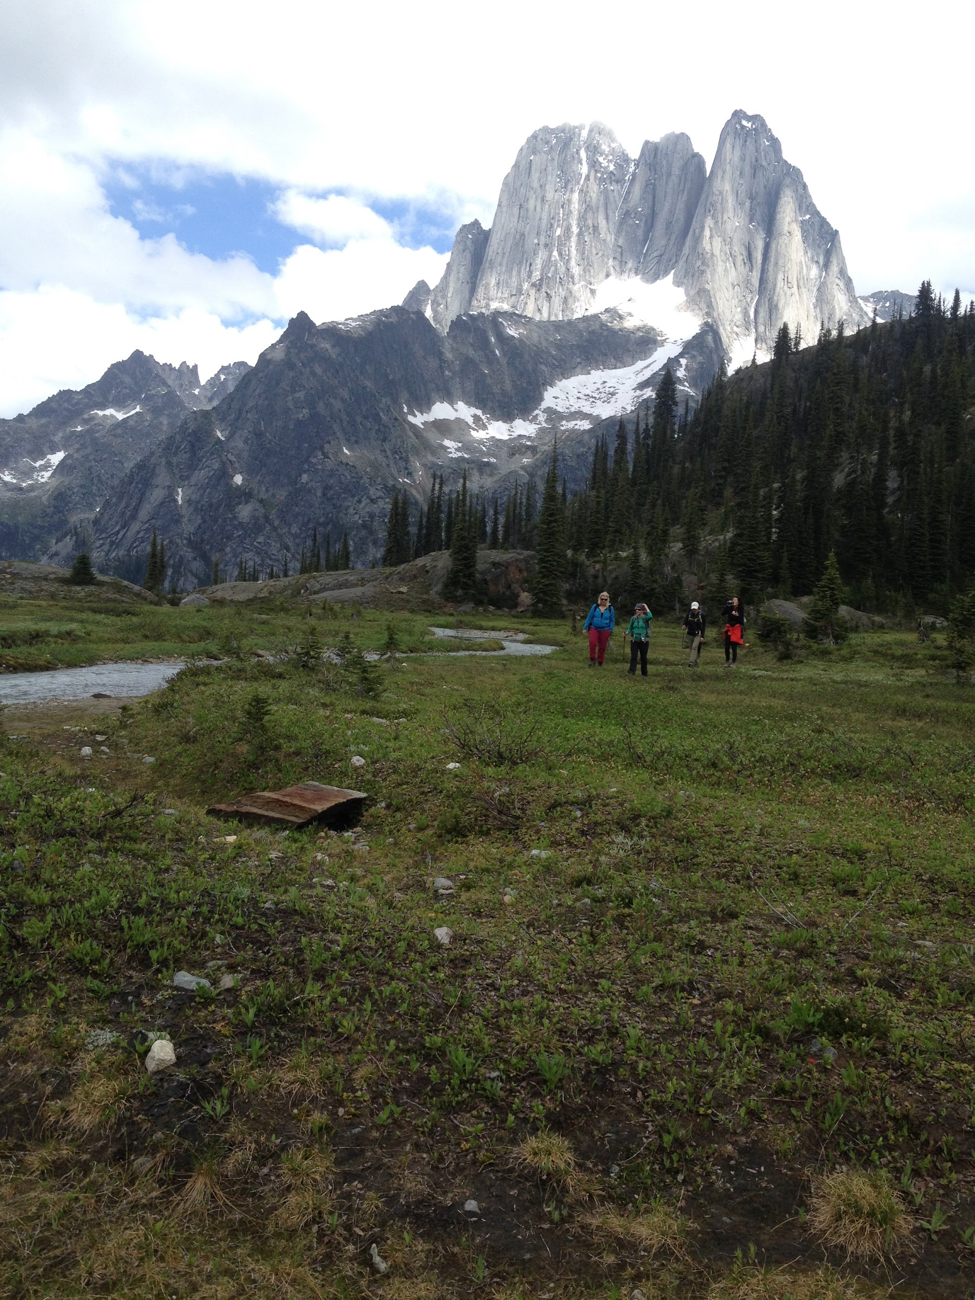 Heli-hiking allows guests at CMH's lodges to experience landscape that would otherwise be inaccessible. Photo credit: Jennifer Pemberton